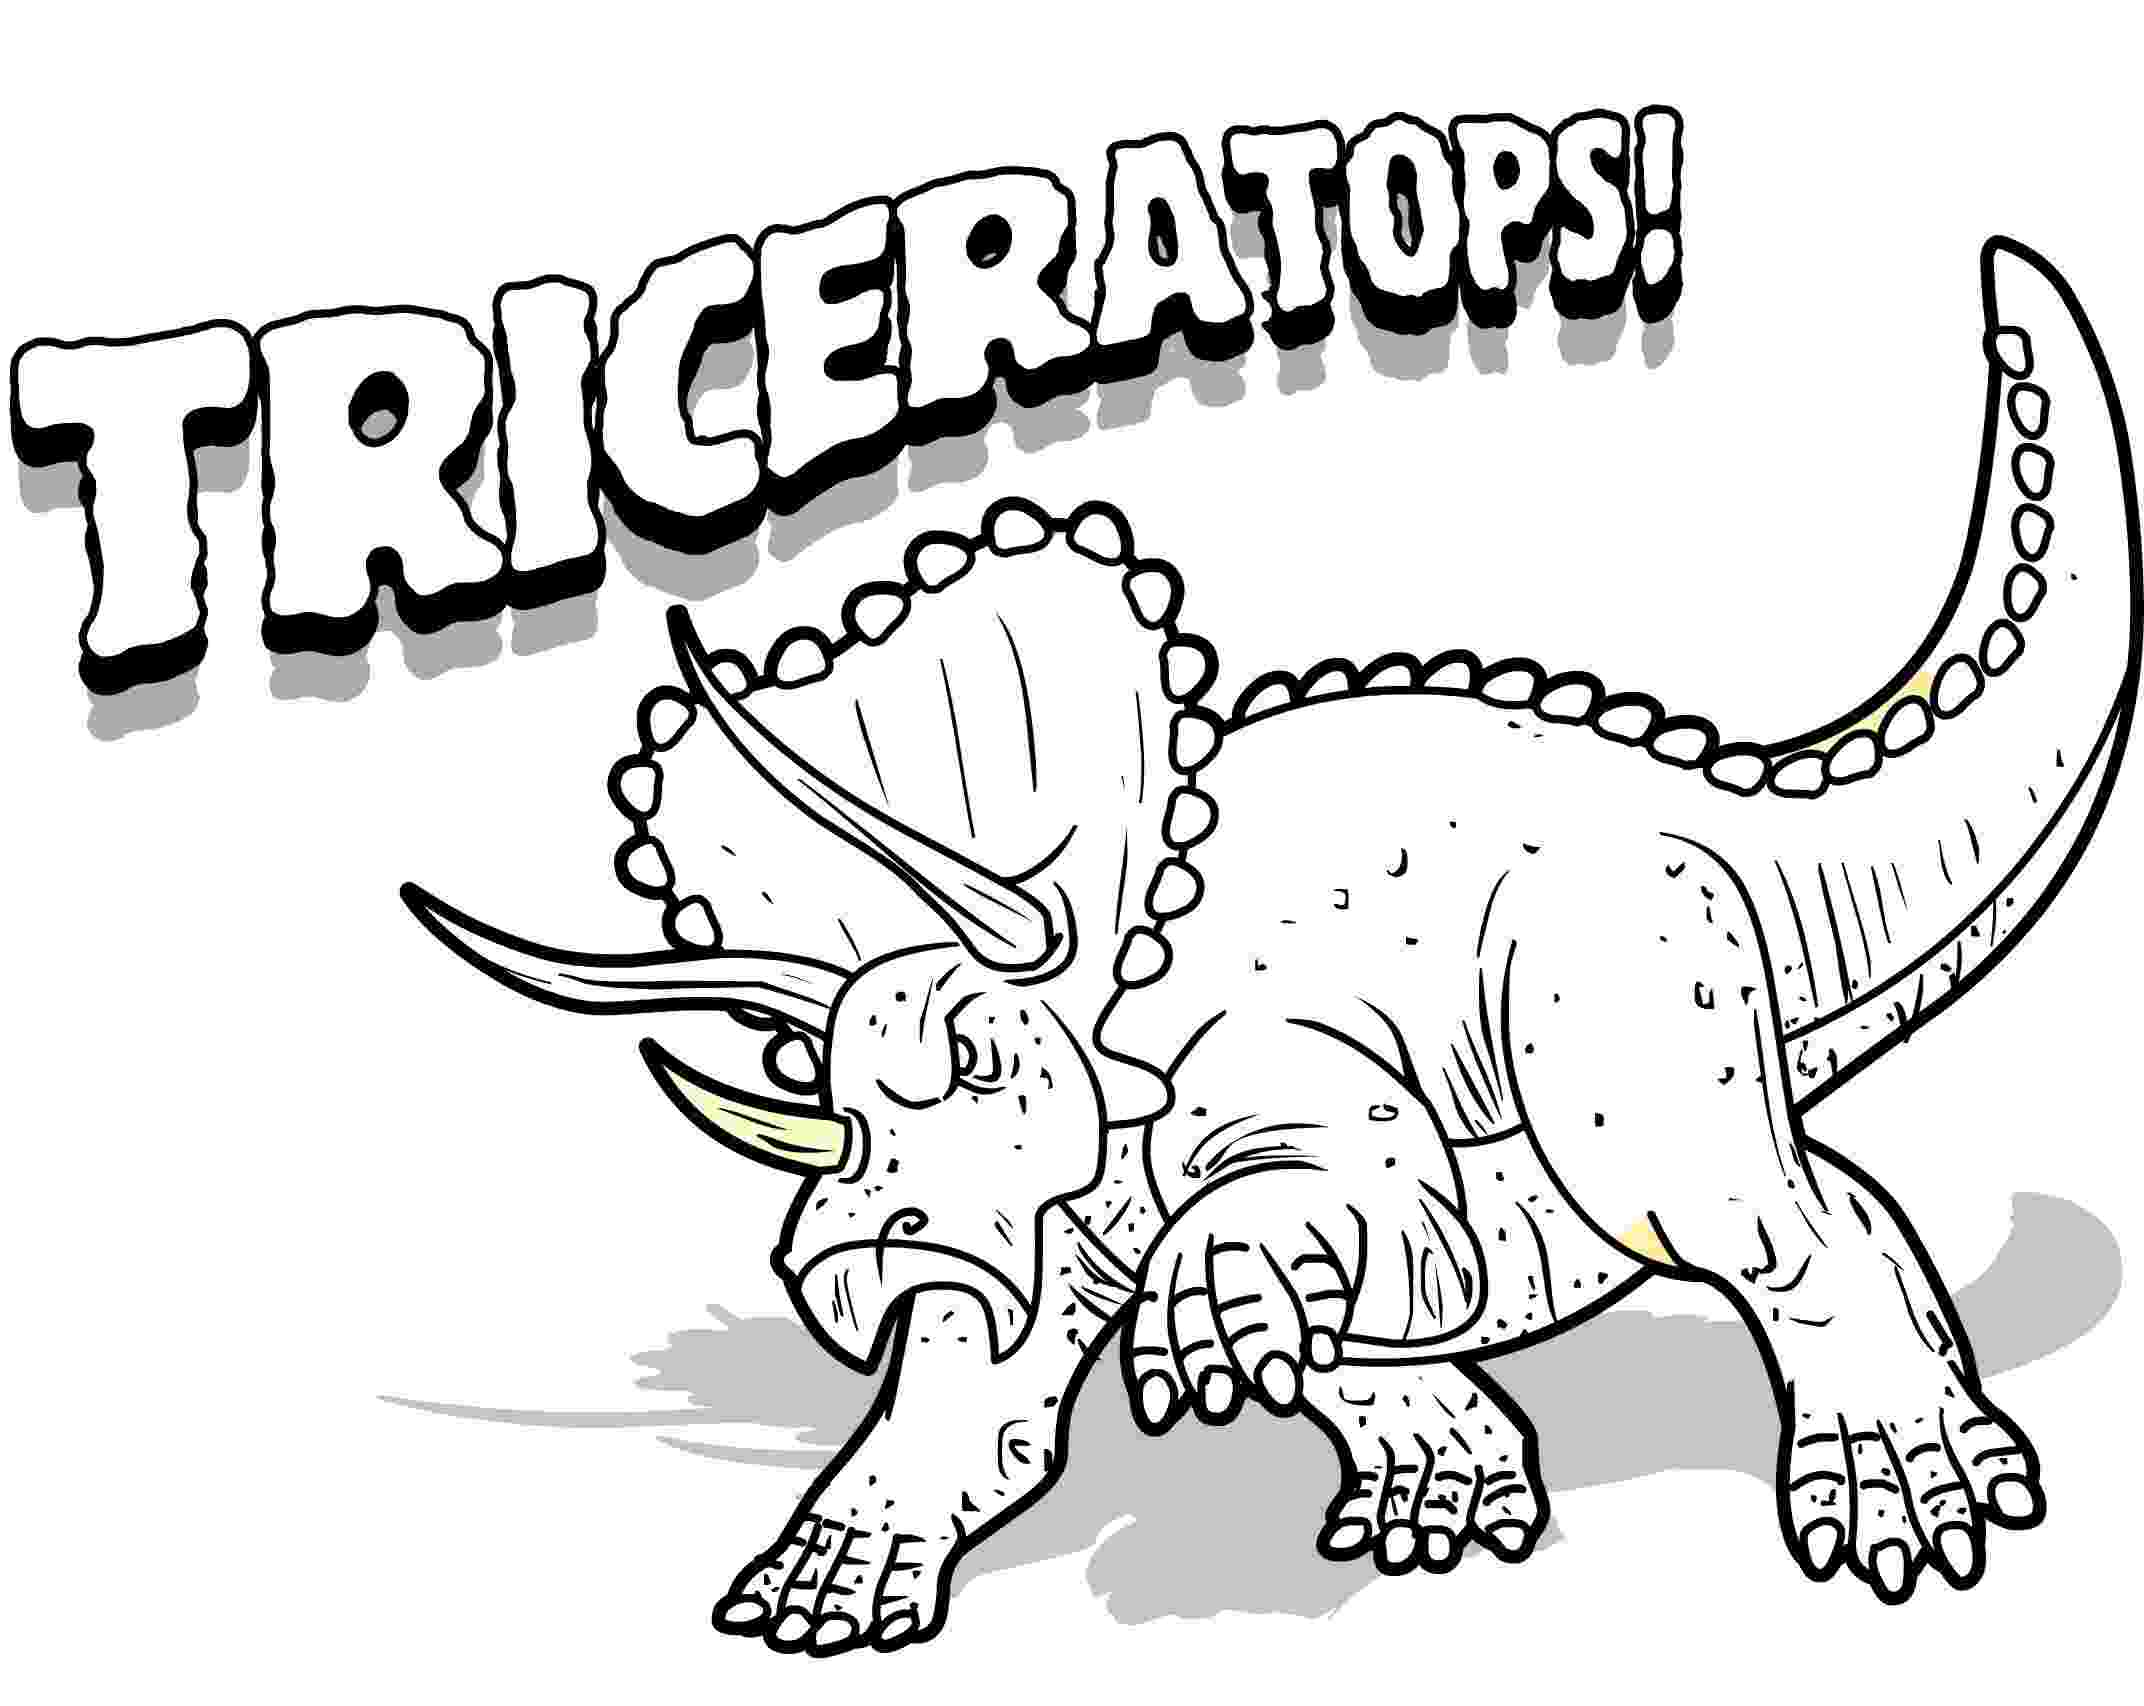 triceratops picture december 2013 dinosaurs and barbarians picture triceratops